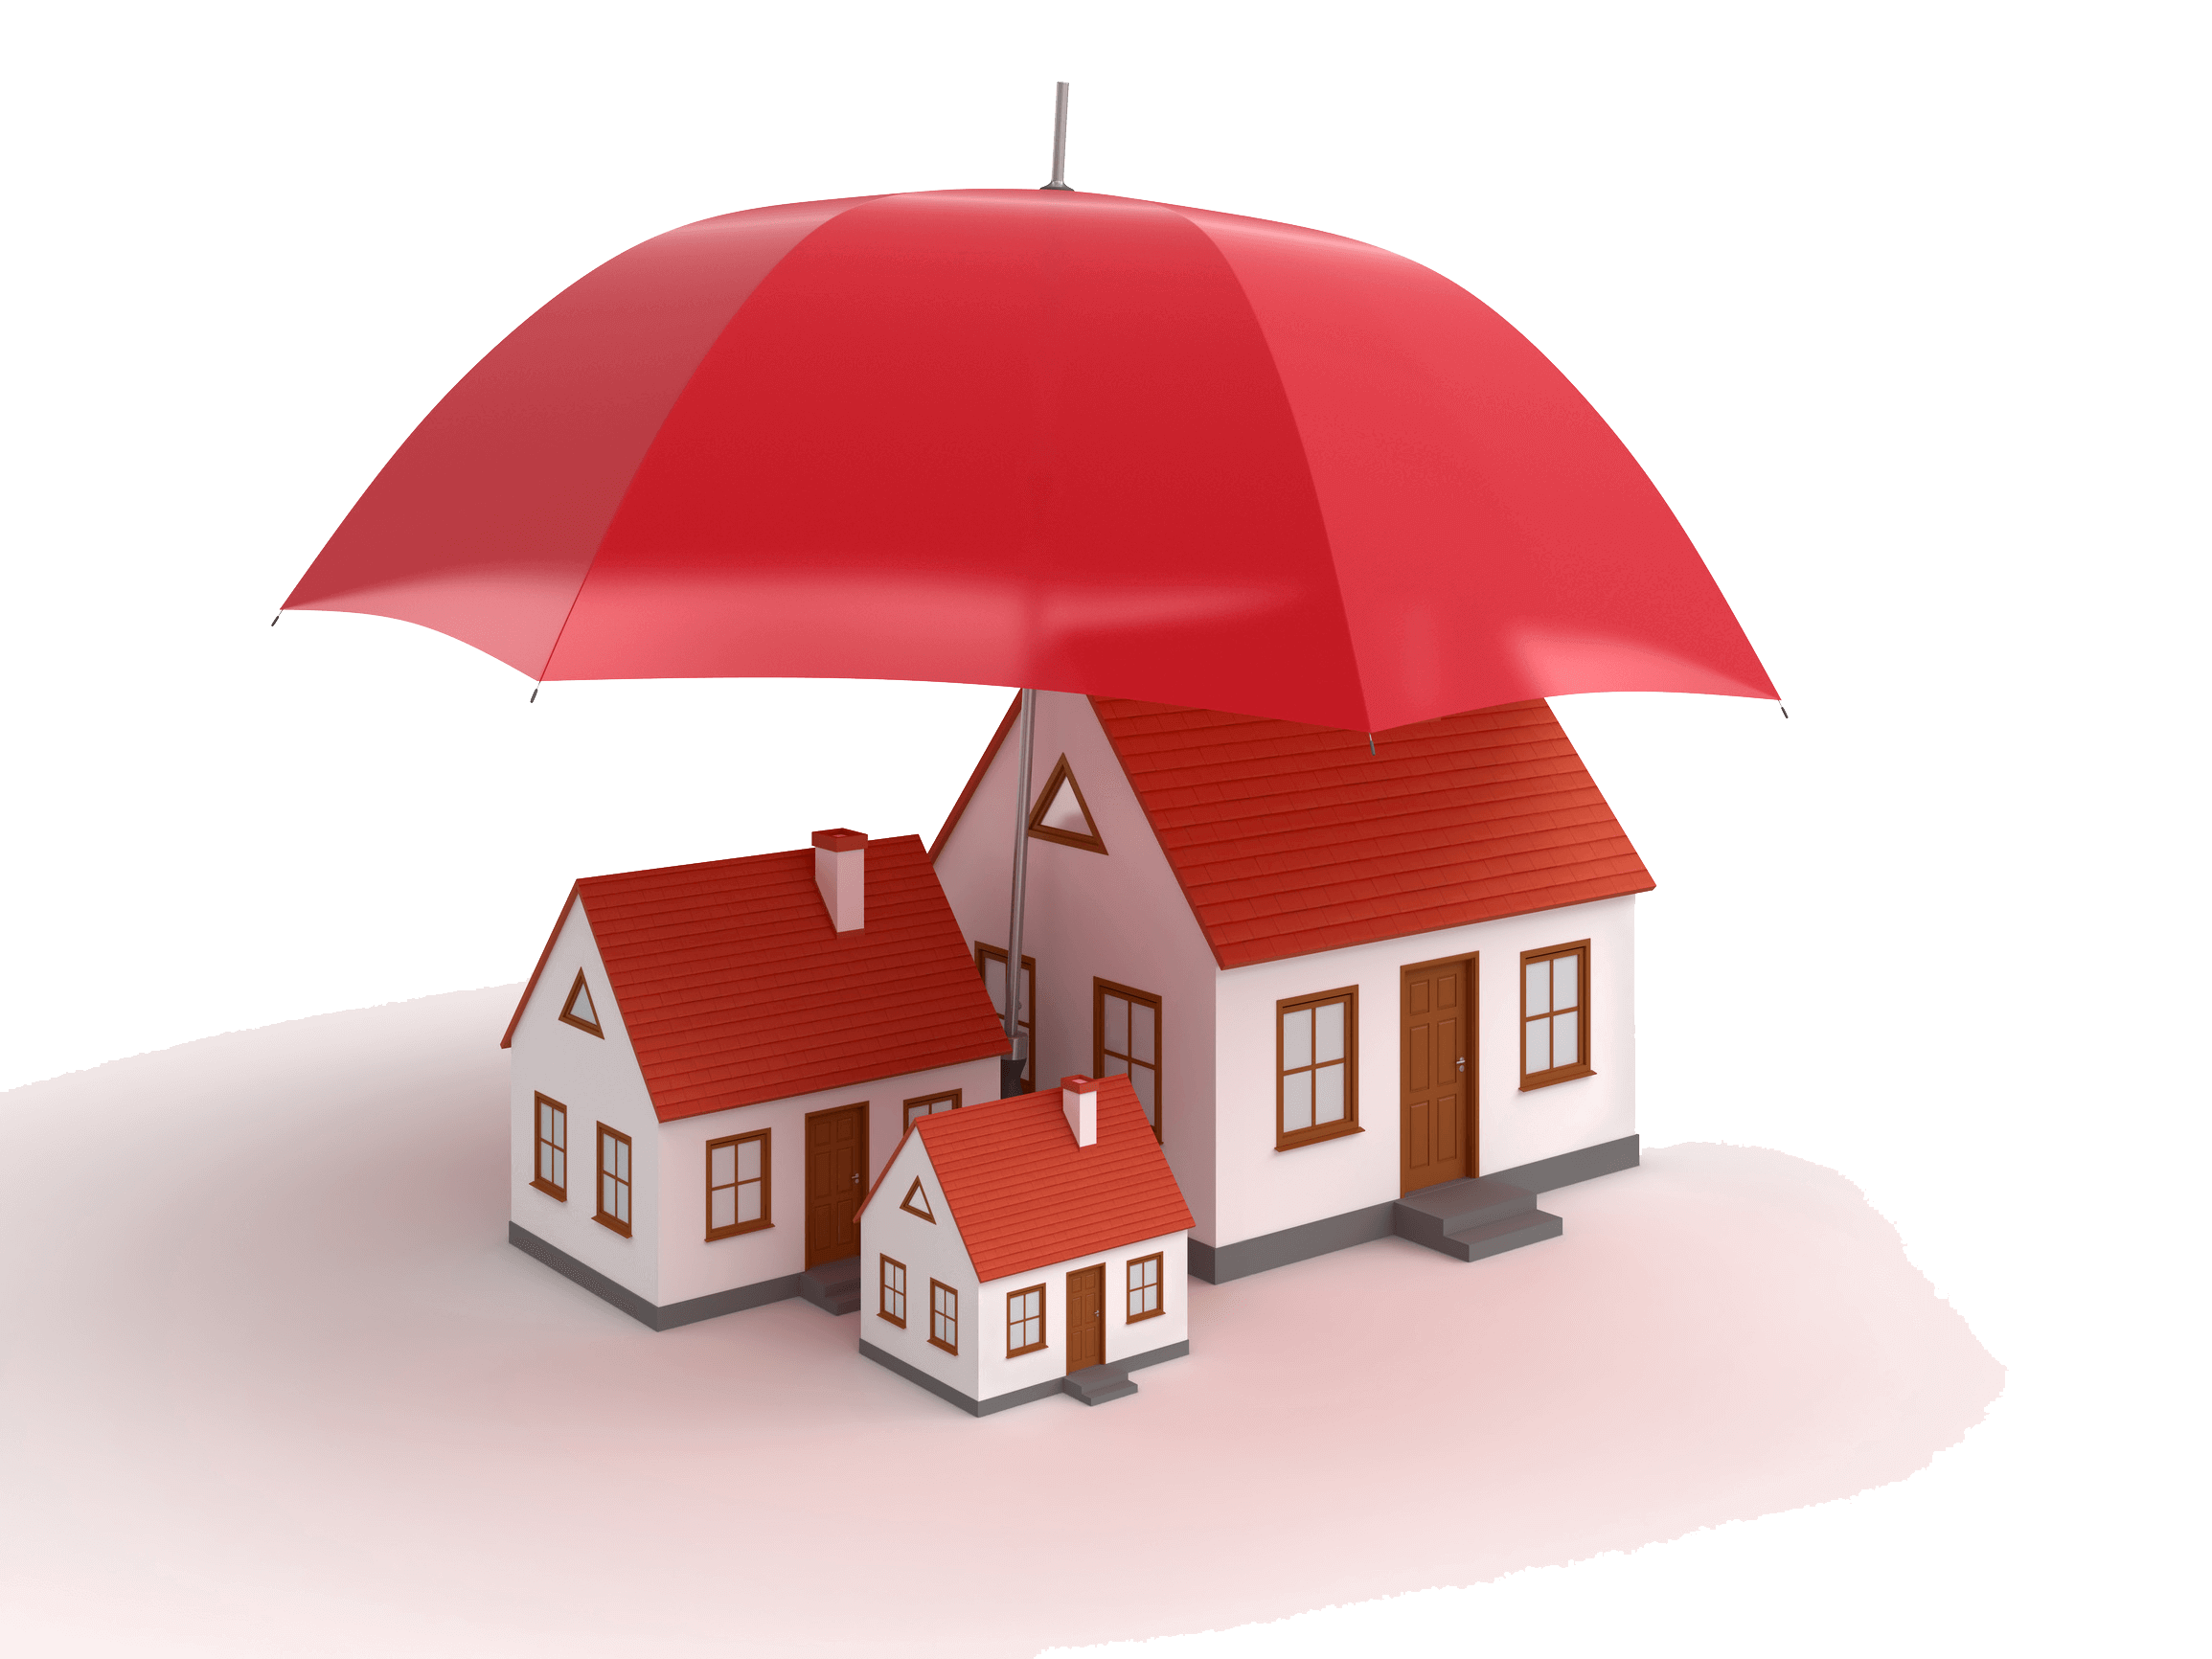 Best home insurance agency. Earthquake clipart broken house